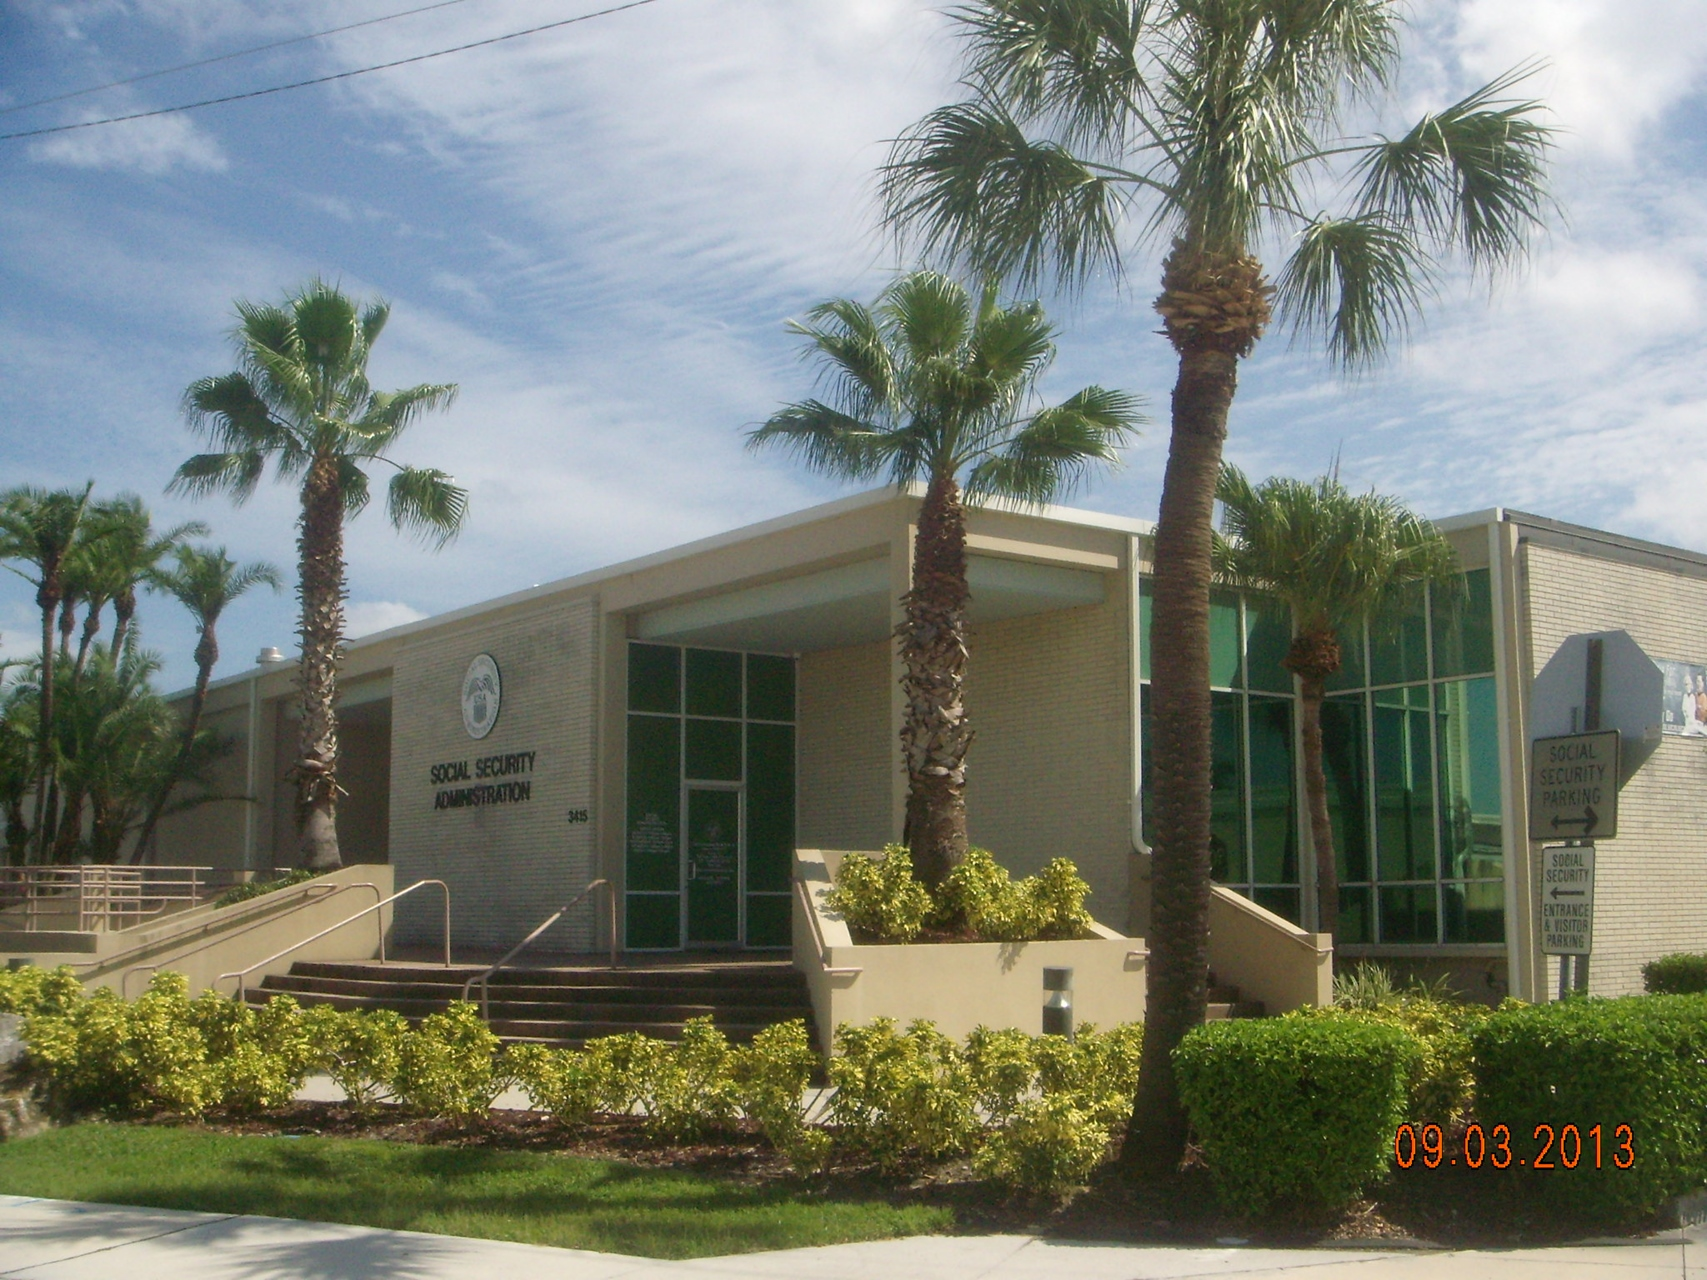 Social Security Office in Tampa